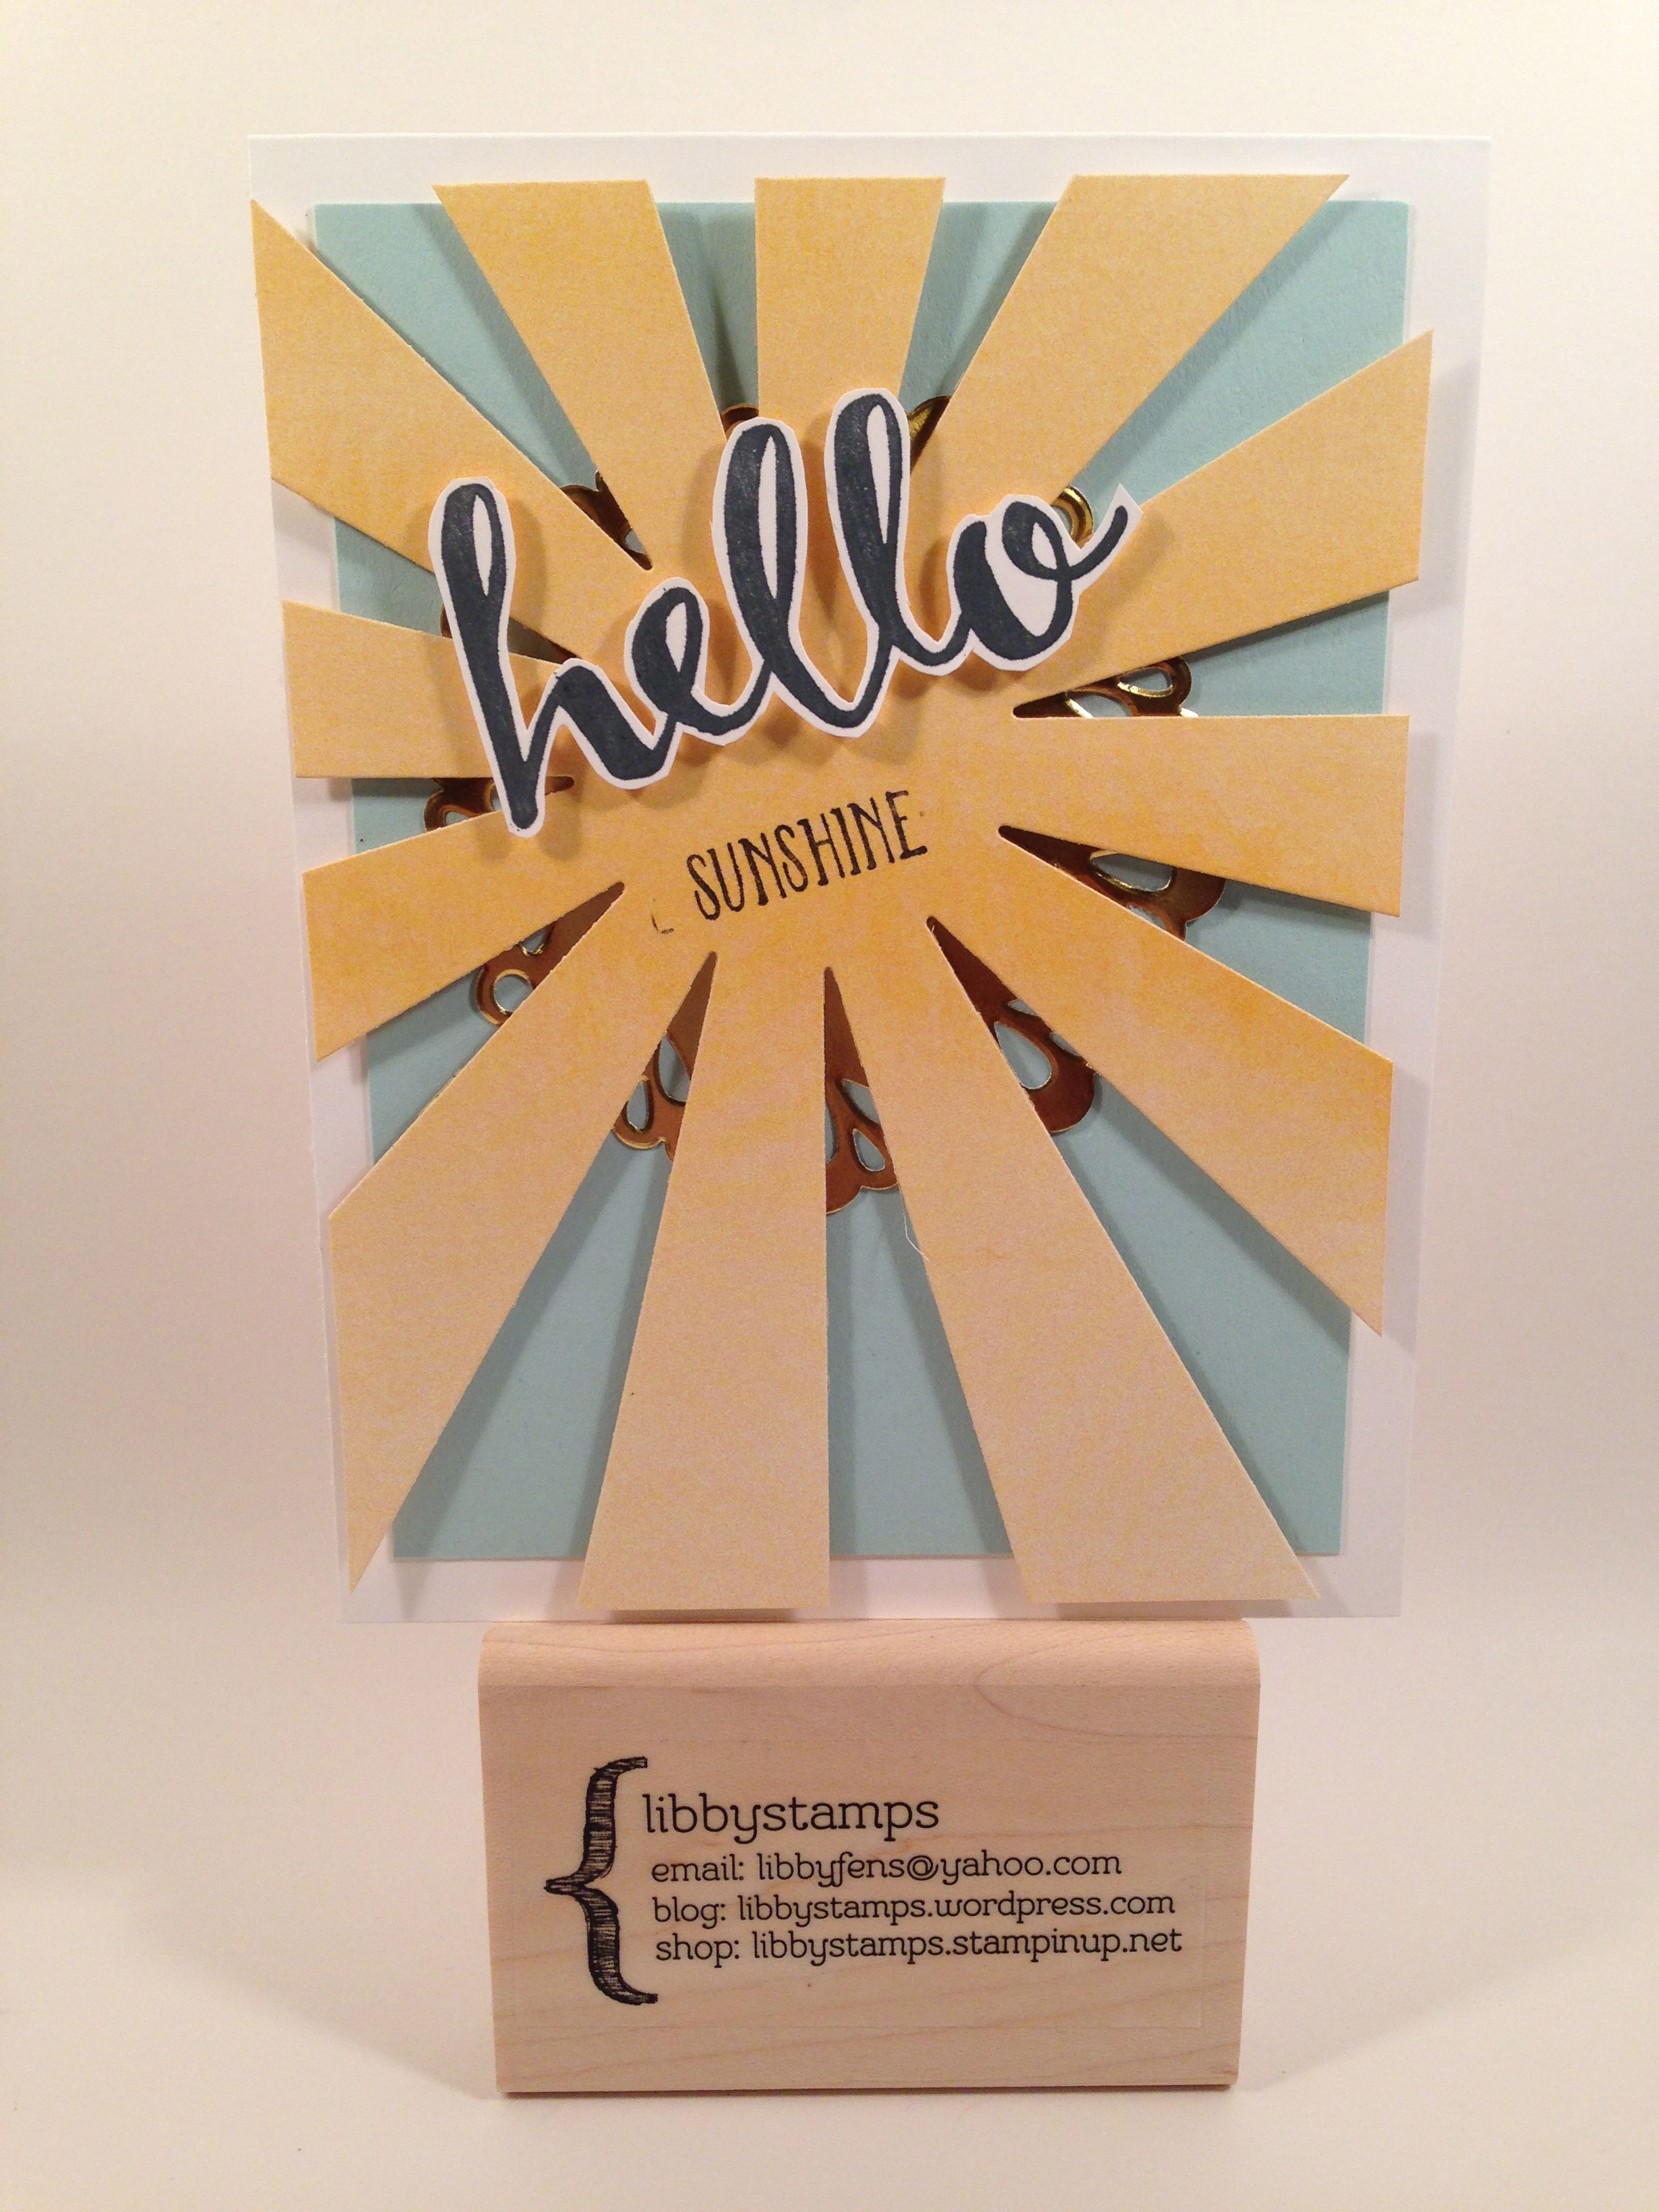 libbystamps, Stampin' Up, Hello, Sunburst Thinlits, Perfectly Artistic DSP, Metallic Foil Doilies,